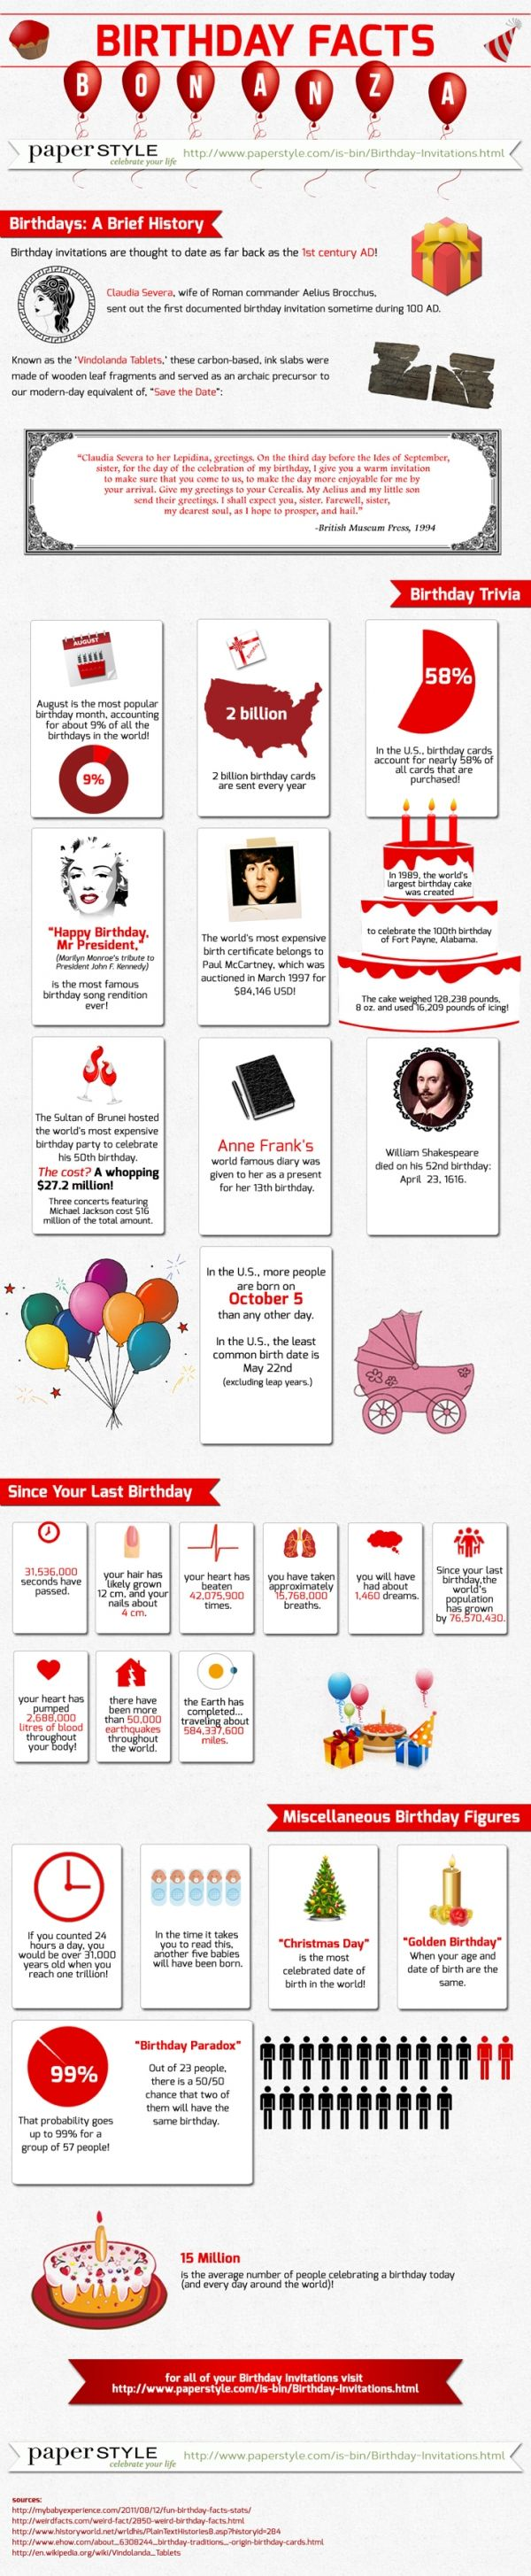 19 Best Birthday Party Infographics Images On Pinterest